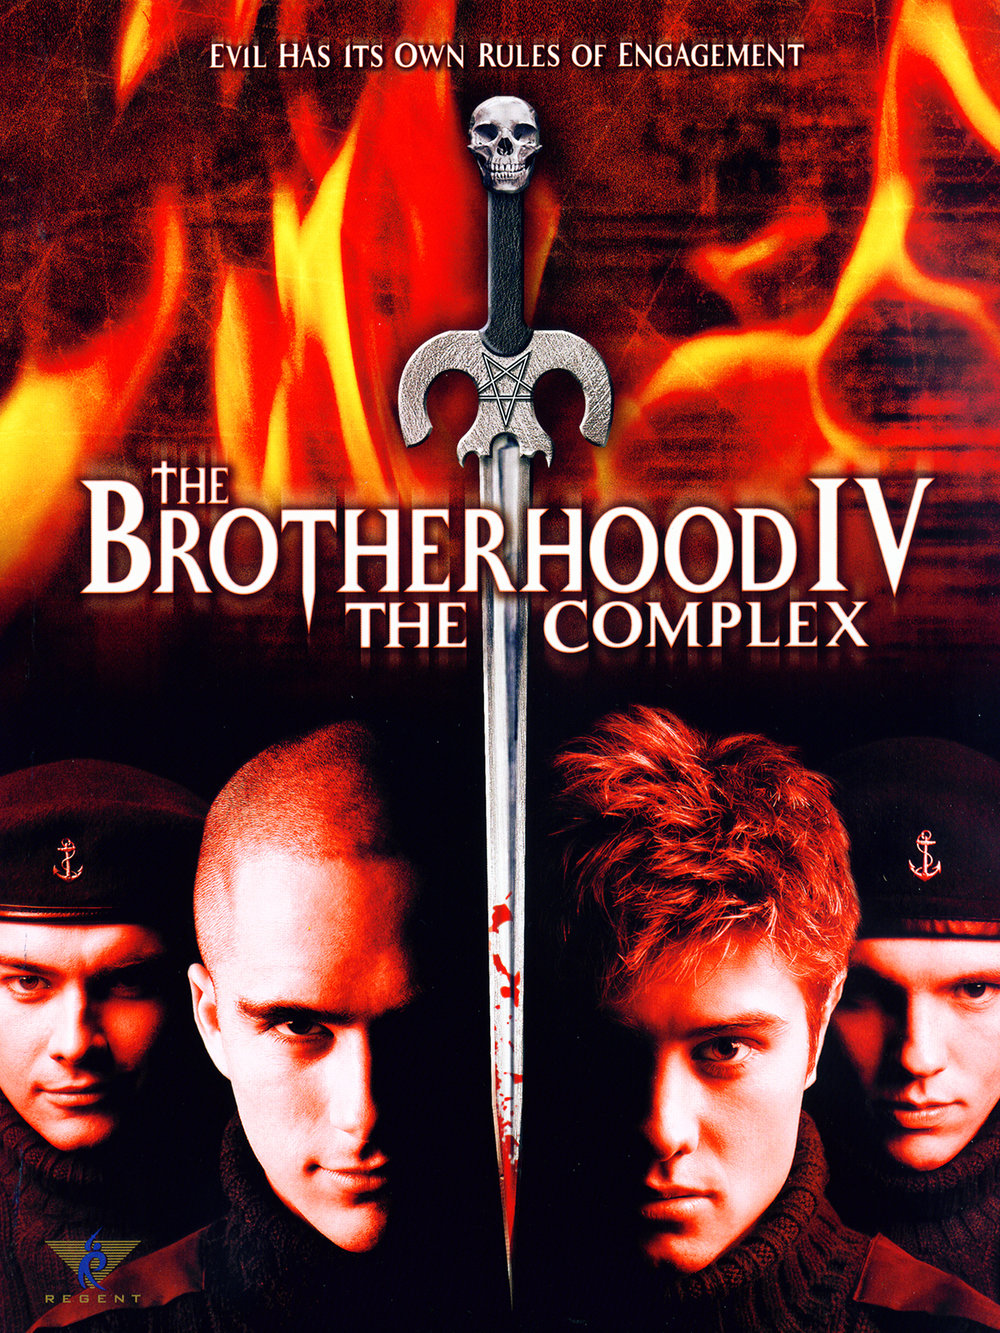 Here-Brotherhood4-Full-Image-en-US.jpg